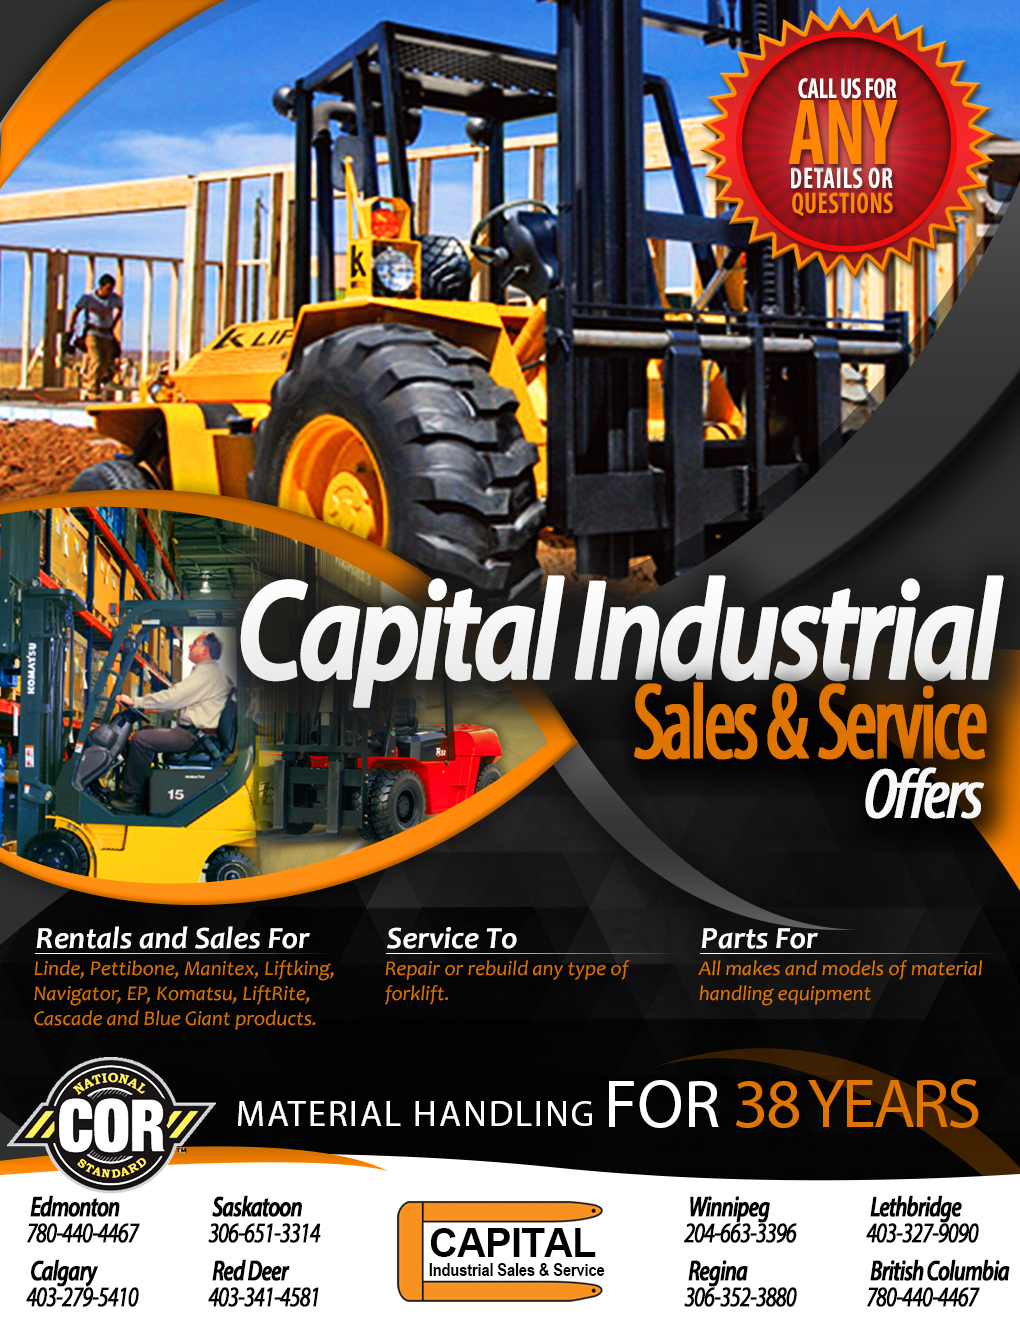 Material Handling For 38 Years